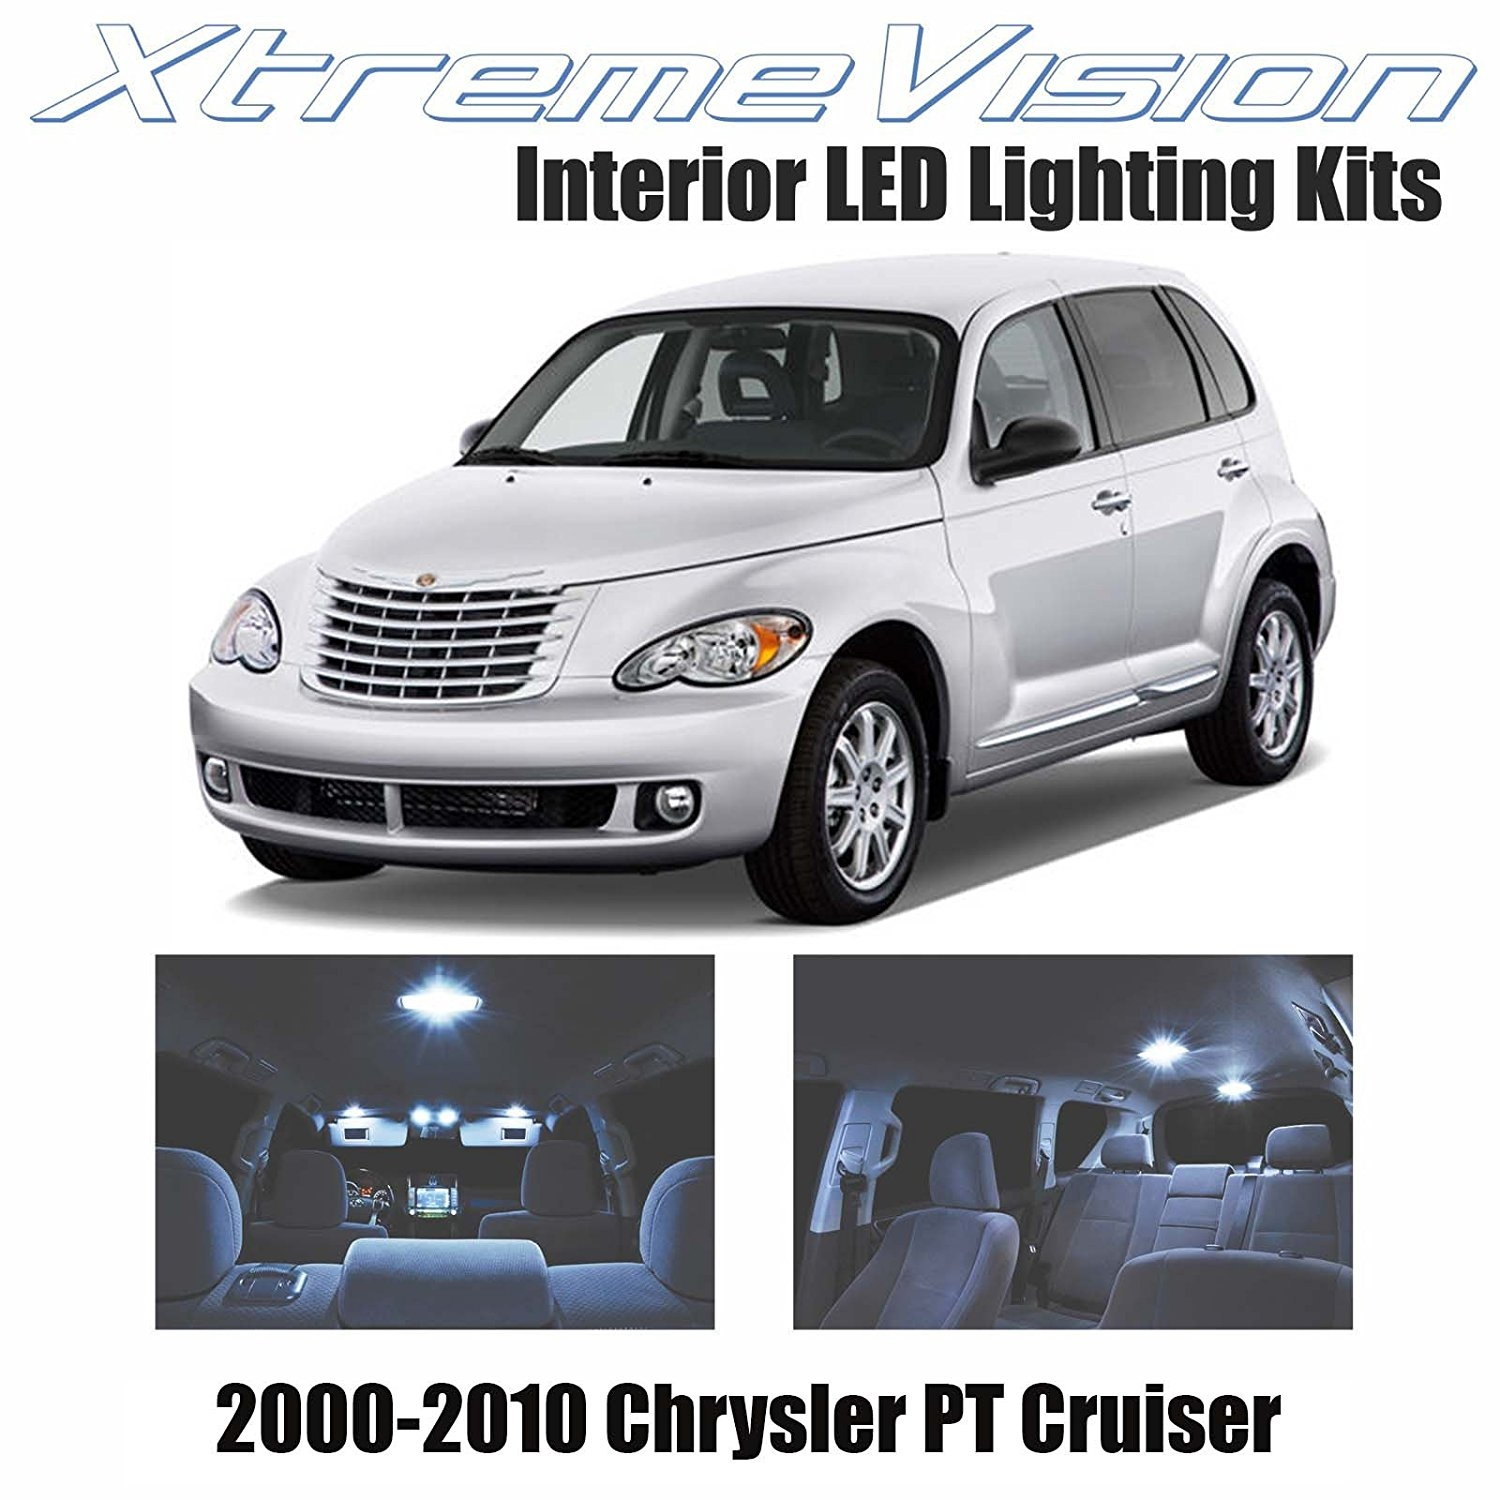 XtremeVision LED for Chrysler PT Cruiser 2000-2010 (10 Pieces) Cool White Premium Interior LED Kit Package + Installation Tool